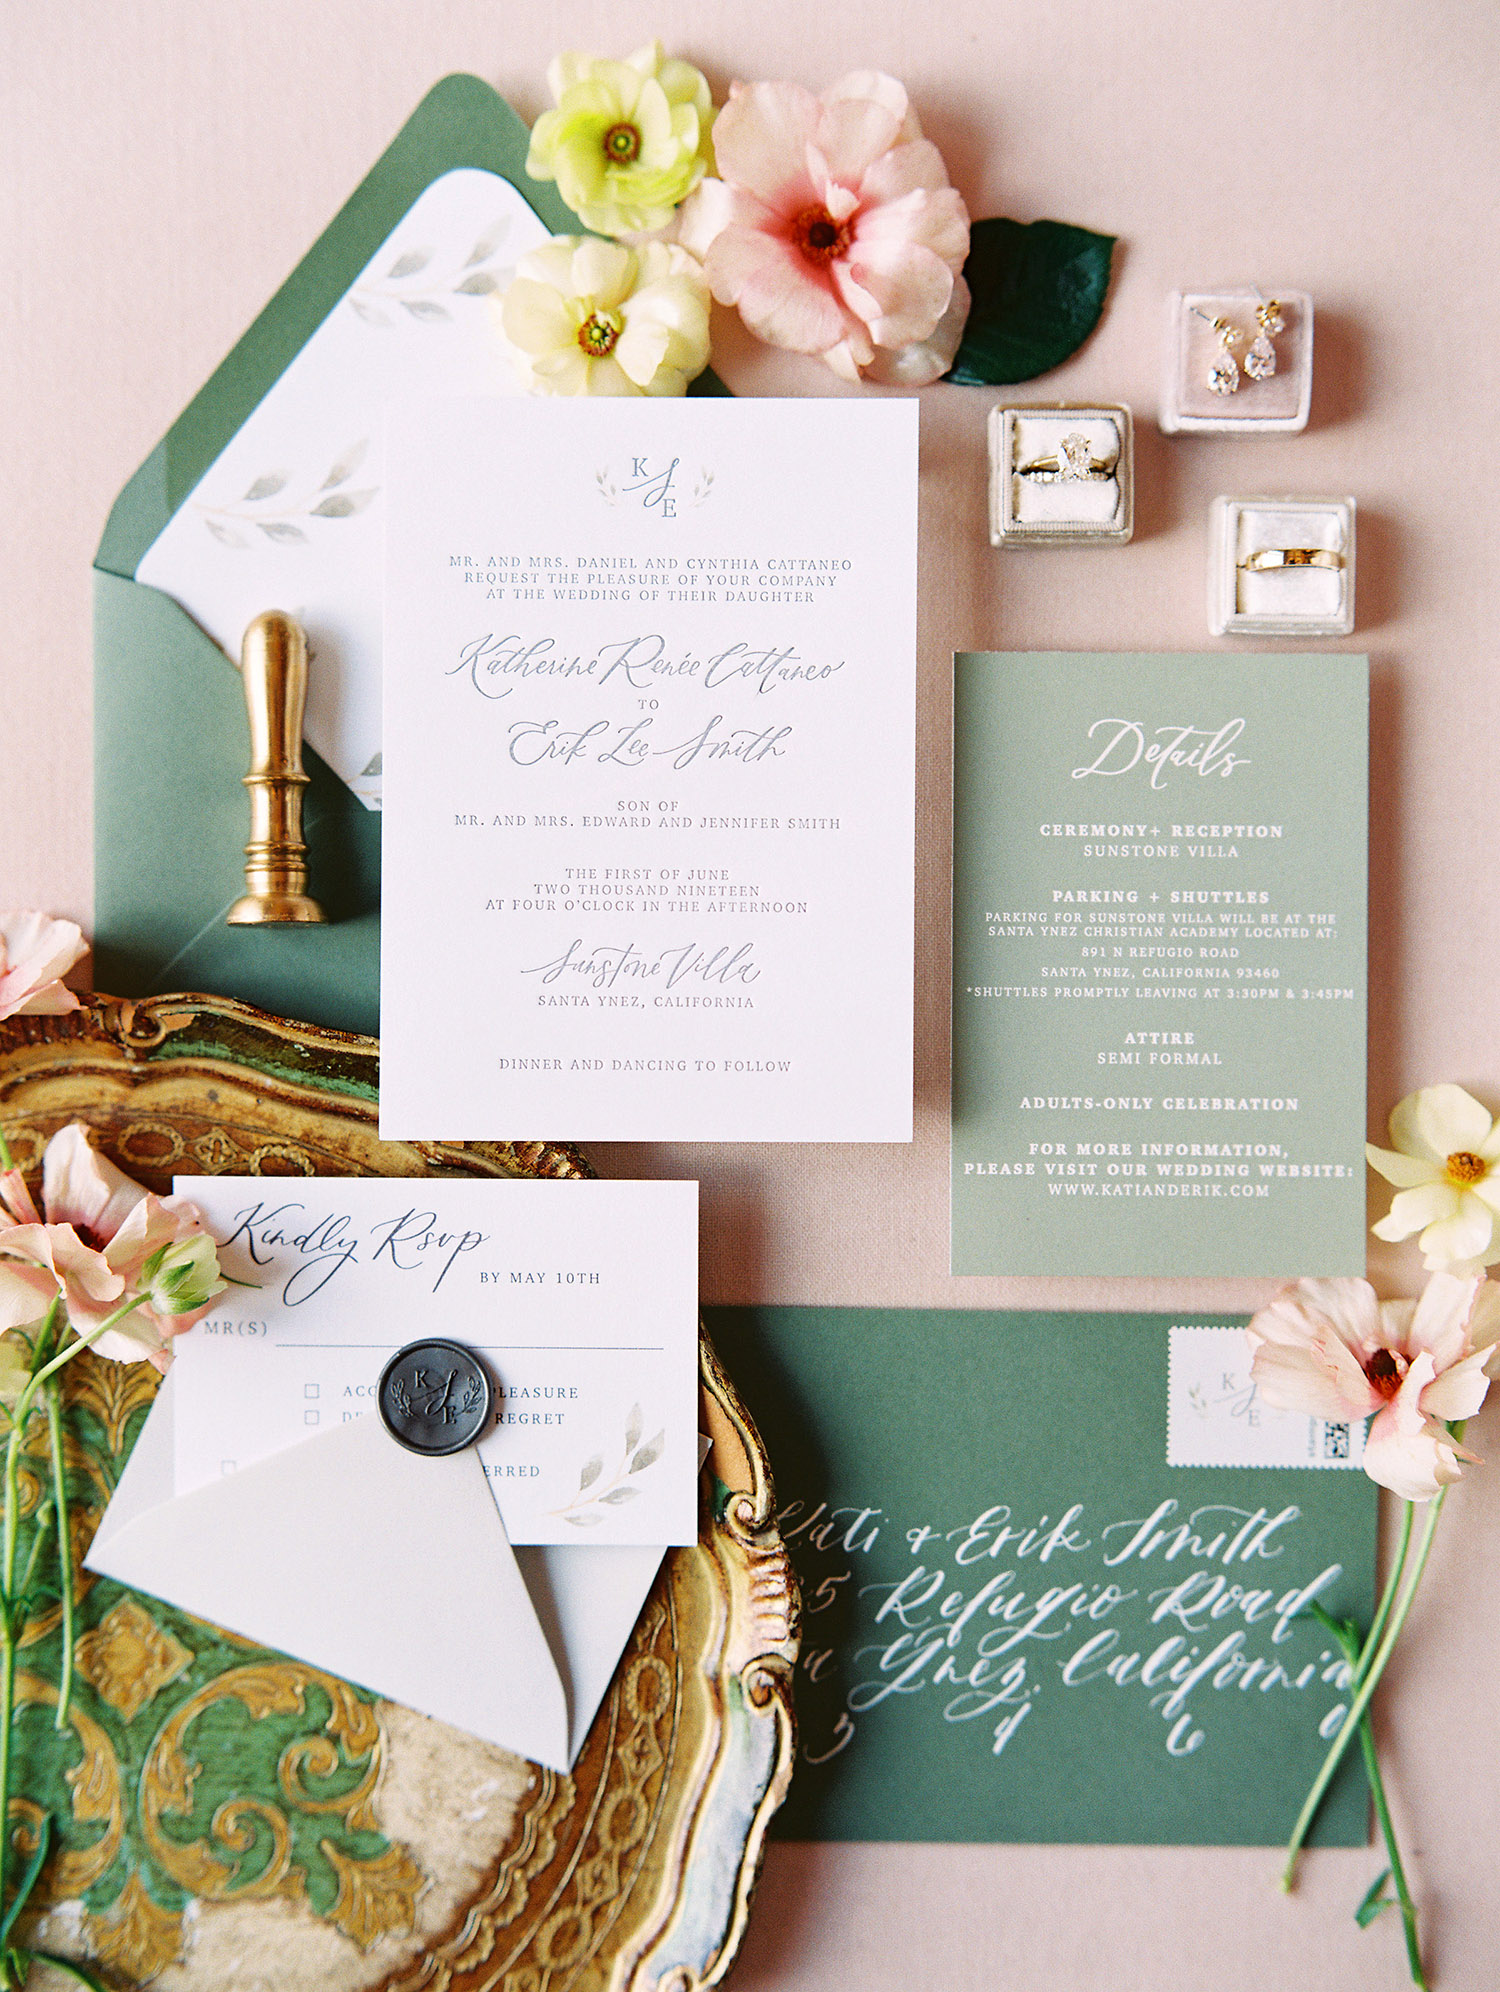 kati erik wedding invitations stationery suite